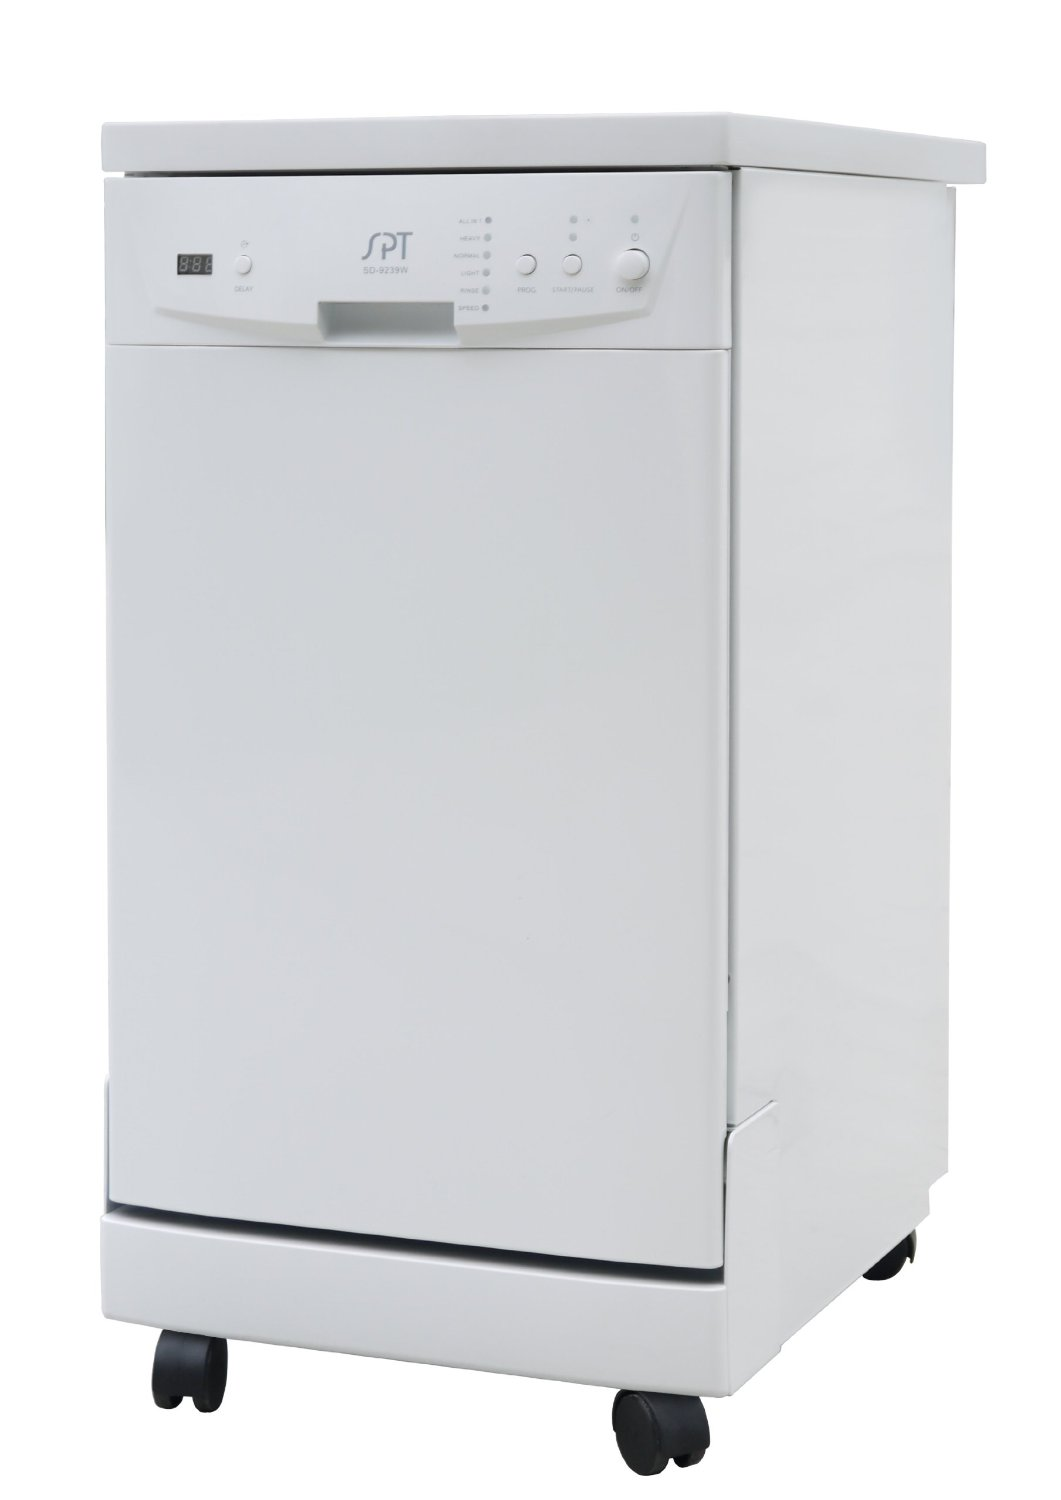 Attractive Bosch Dishwashers Reviews